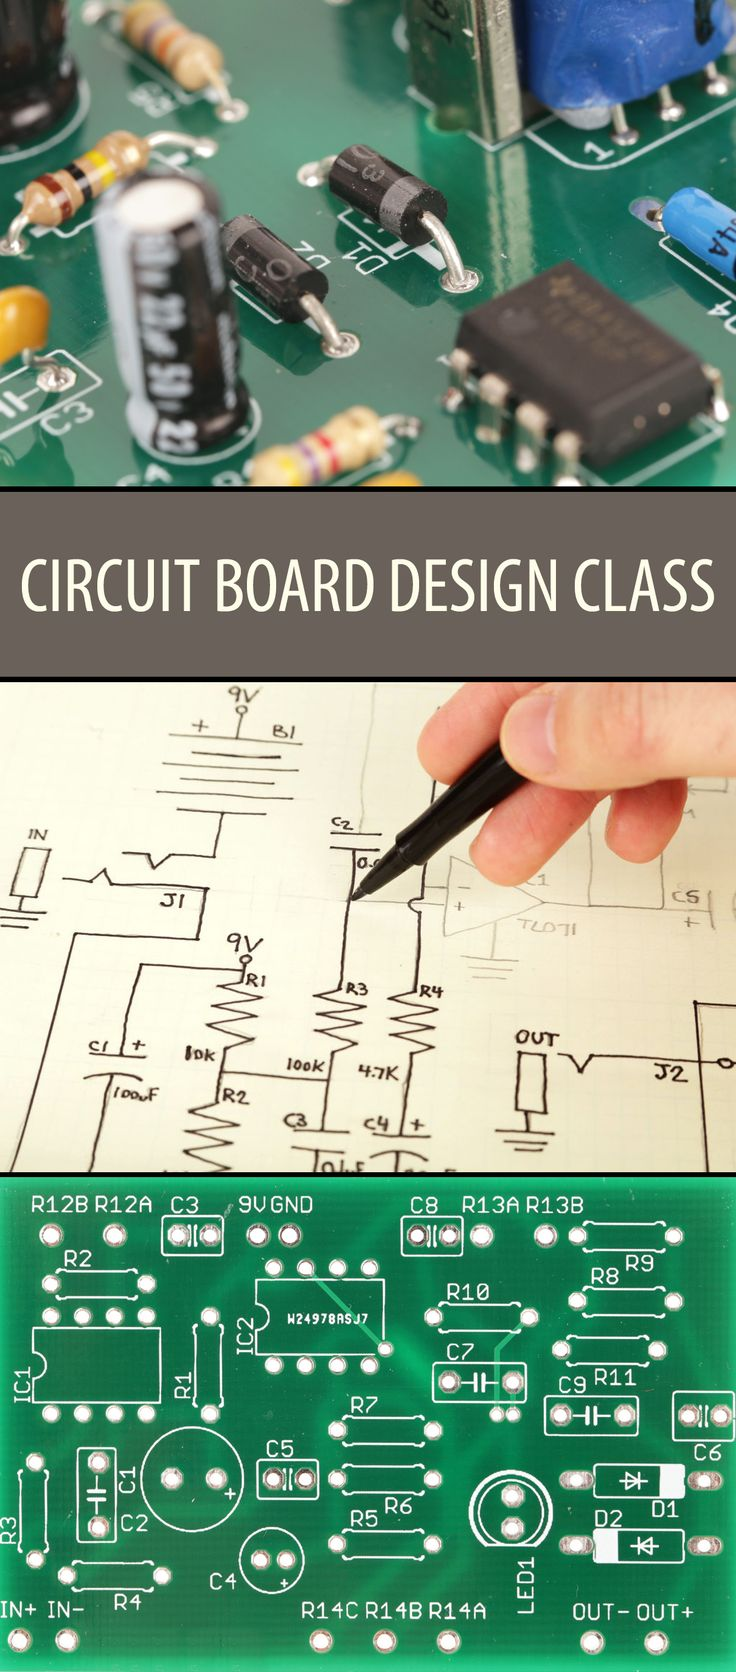 163 Best Proiecte Images On Pinterest Electronics Projects Diy Attiny Candle Electronicslab In This Class You Will Learn How To Design A Custom Printed Circuit Board From